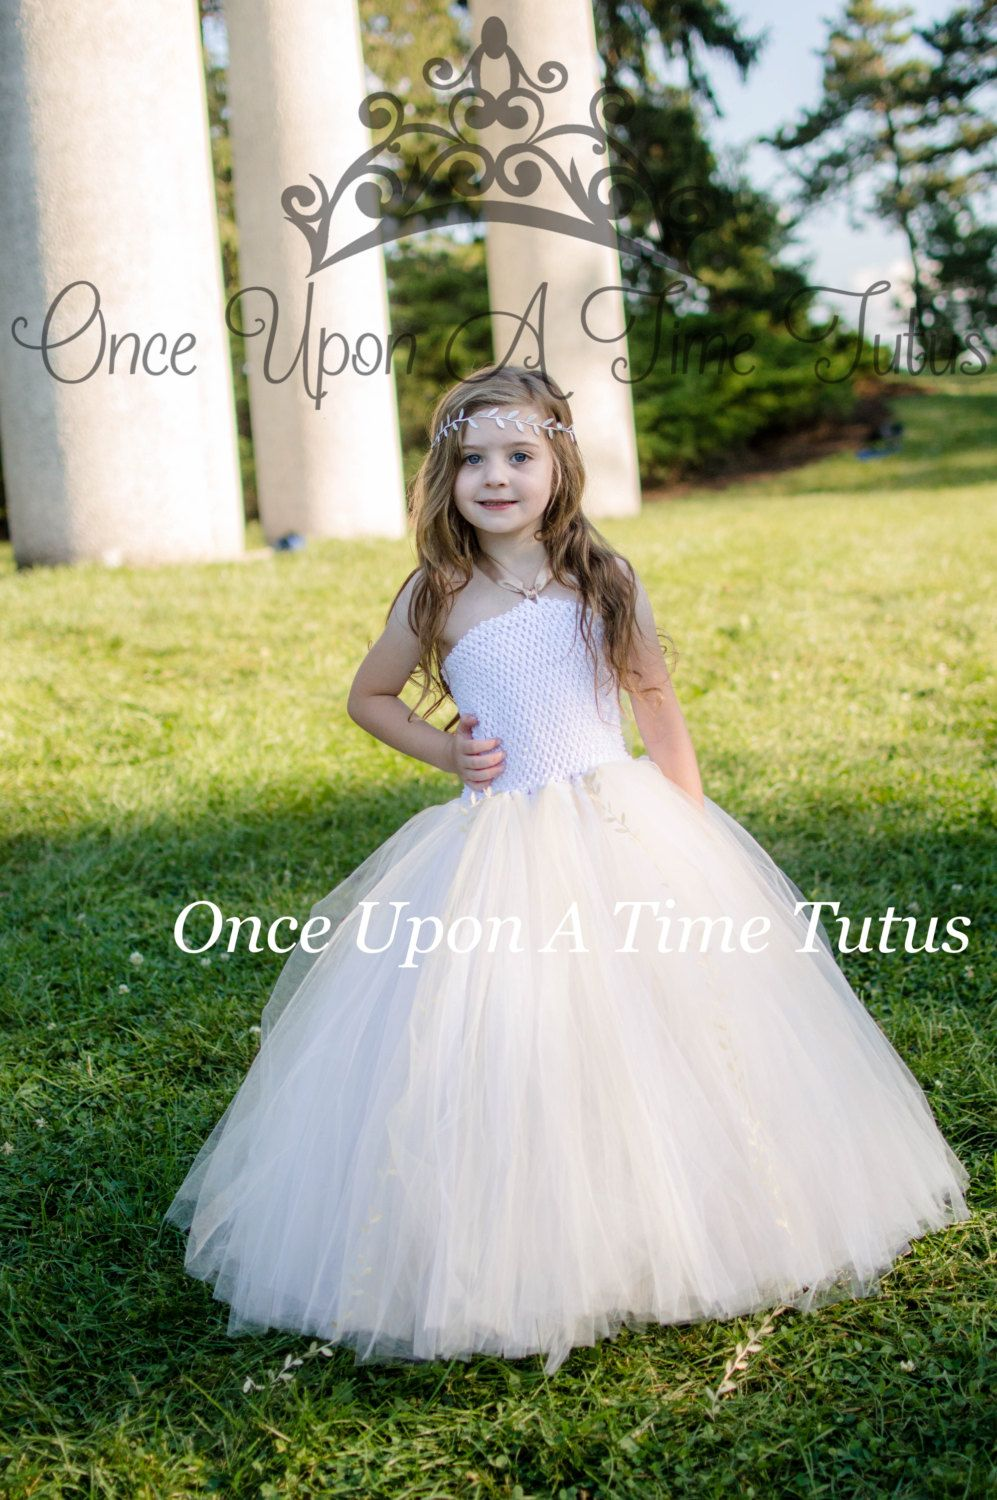 greek goddess tutu dress halloween costume little girls size 6 12 months 6 7 8 10 12 roman athena princess pageant gown by onceuponatimetutus on etsy - Pageant Girl Halloween Costume